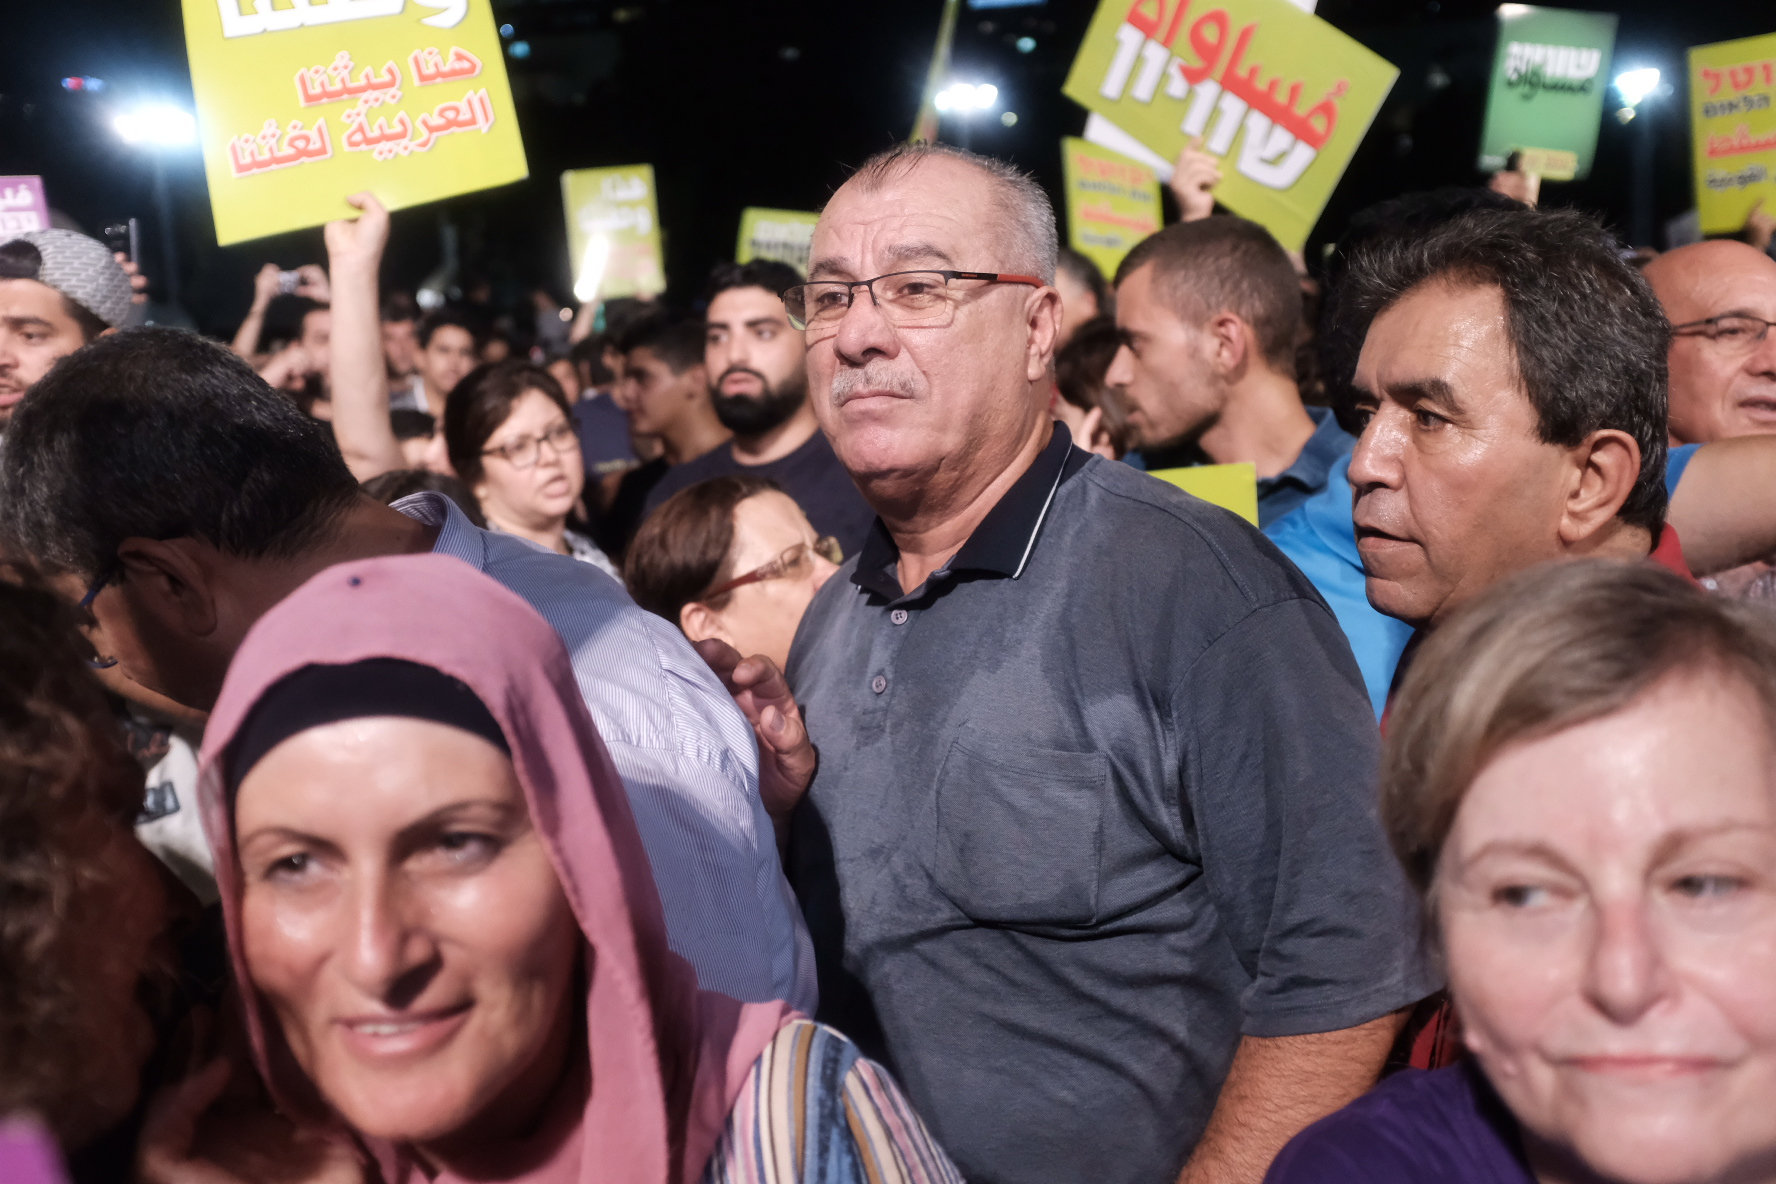 Mohammad Barakeh attends a protest against the Jewish Nation-State law in Tel Aviv on August 11, 2018. (Tomer Neuberg/Flash90)